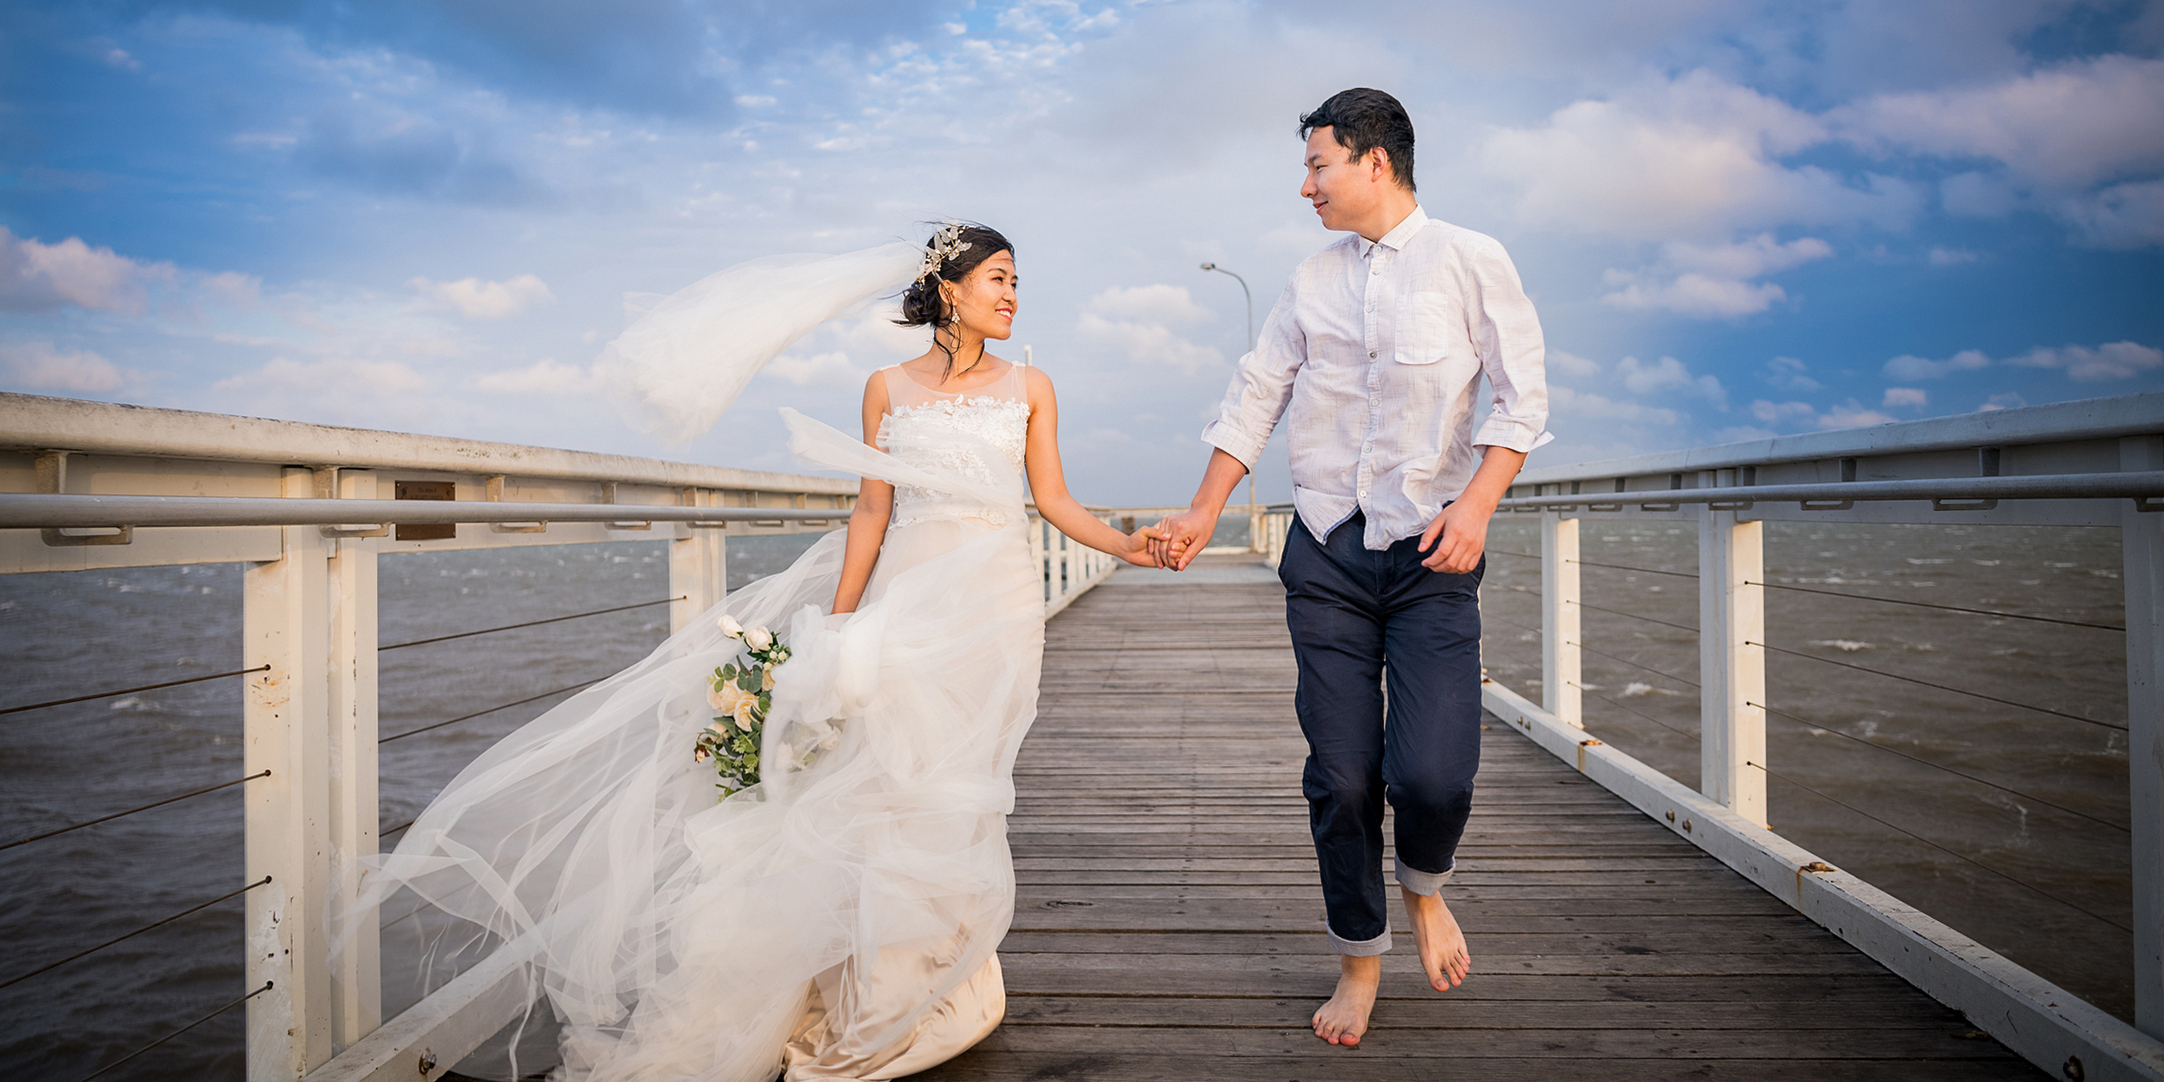 Wedding photo in Brisbane